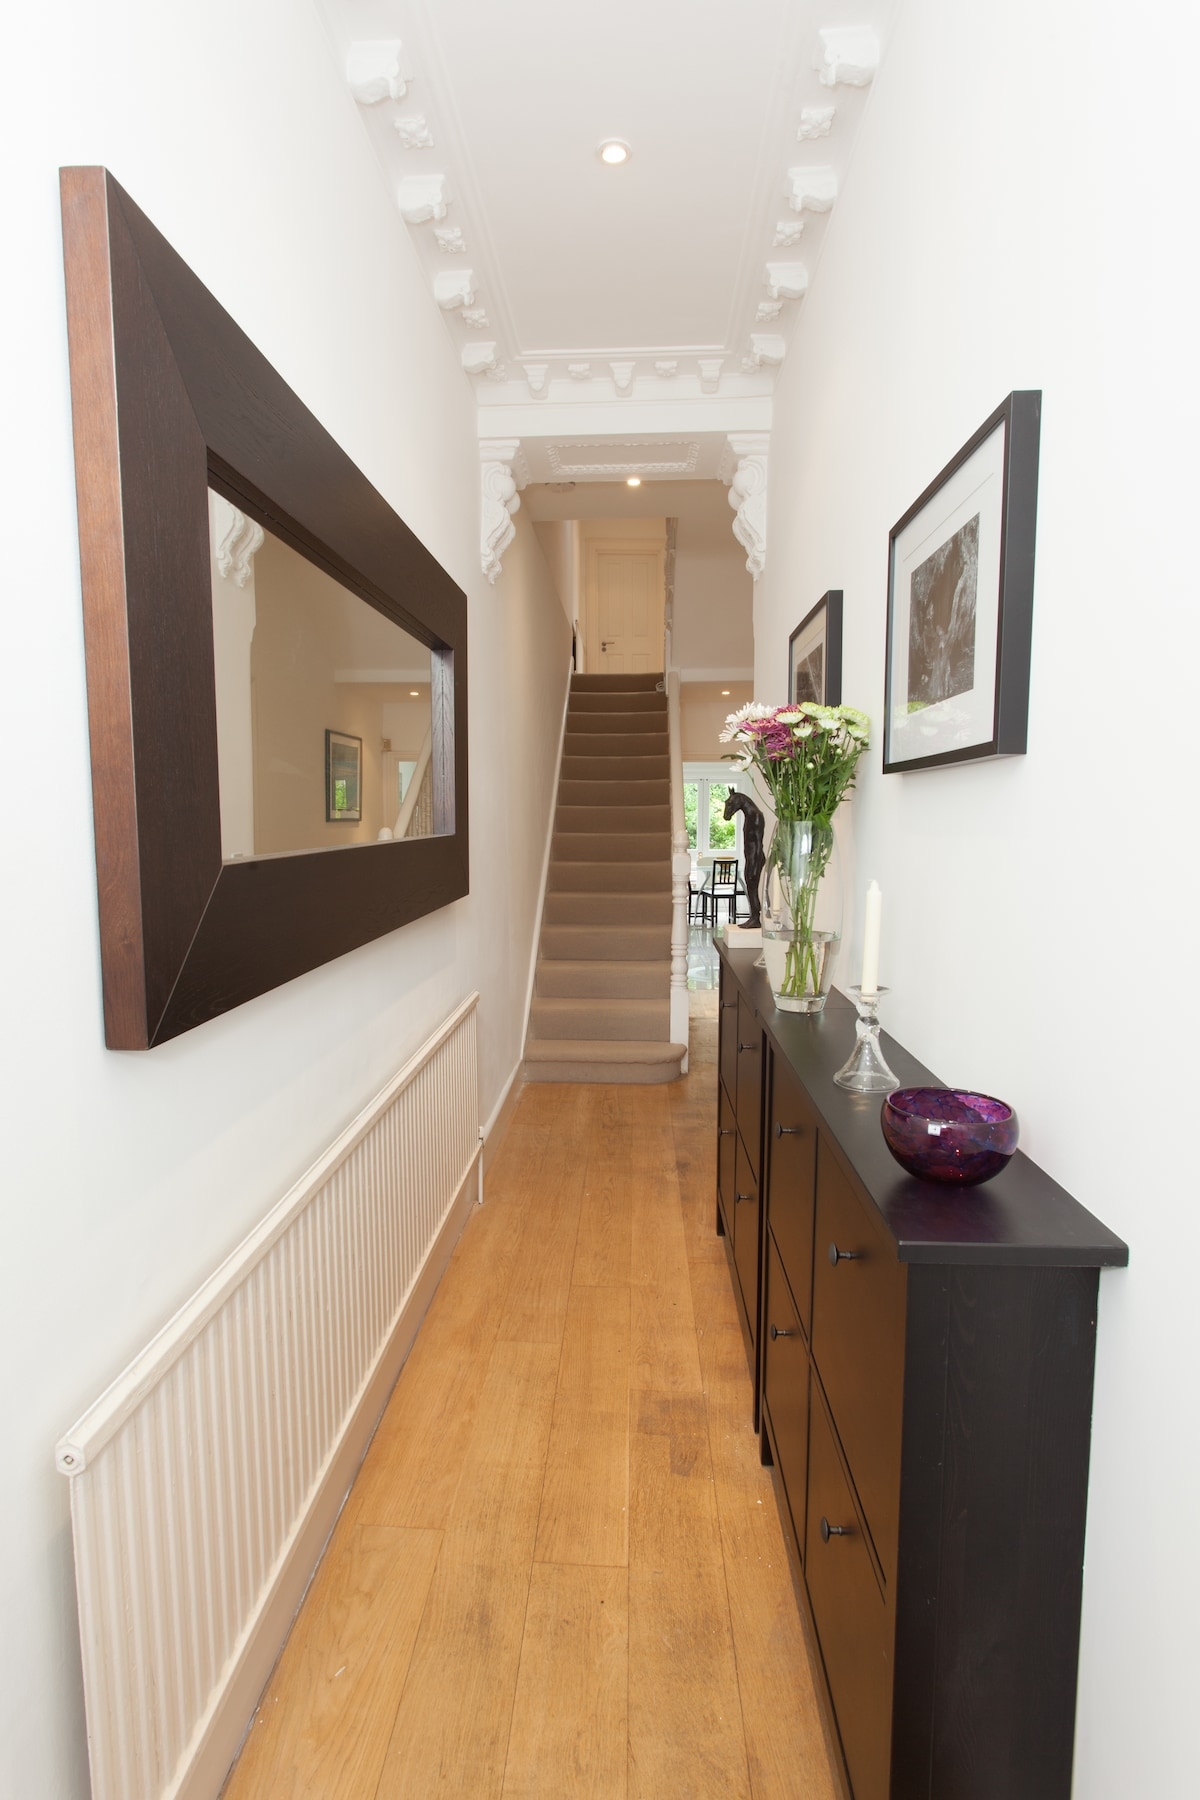 Entrance Hallway, with large mirror adds to a feeling of spaciousness.